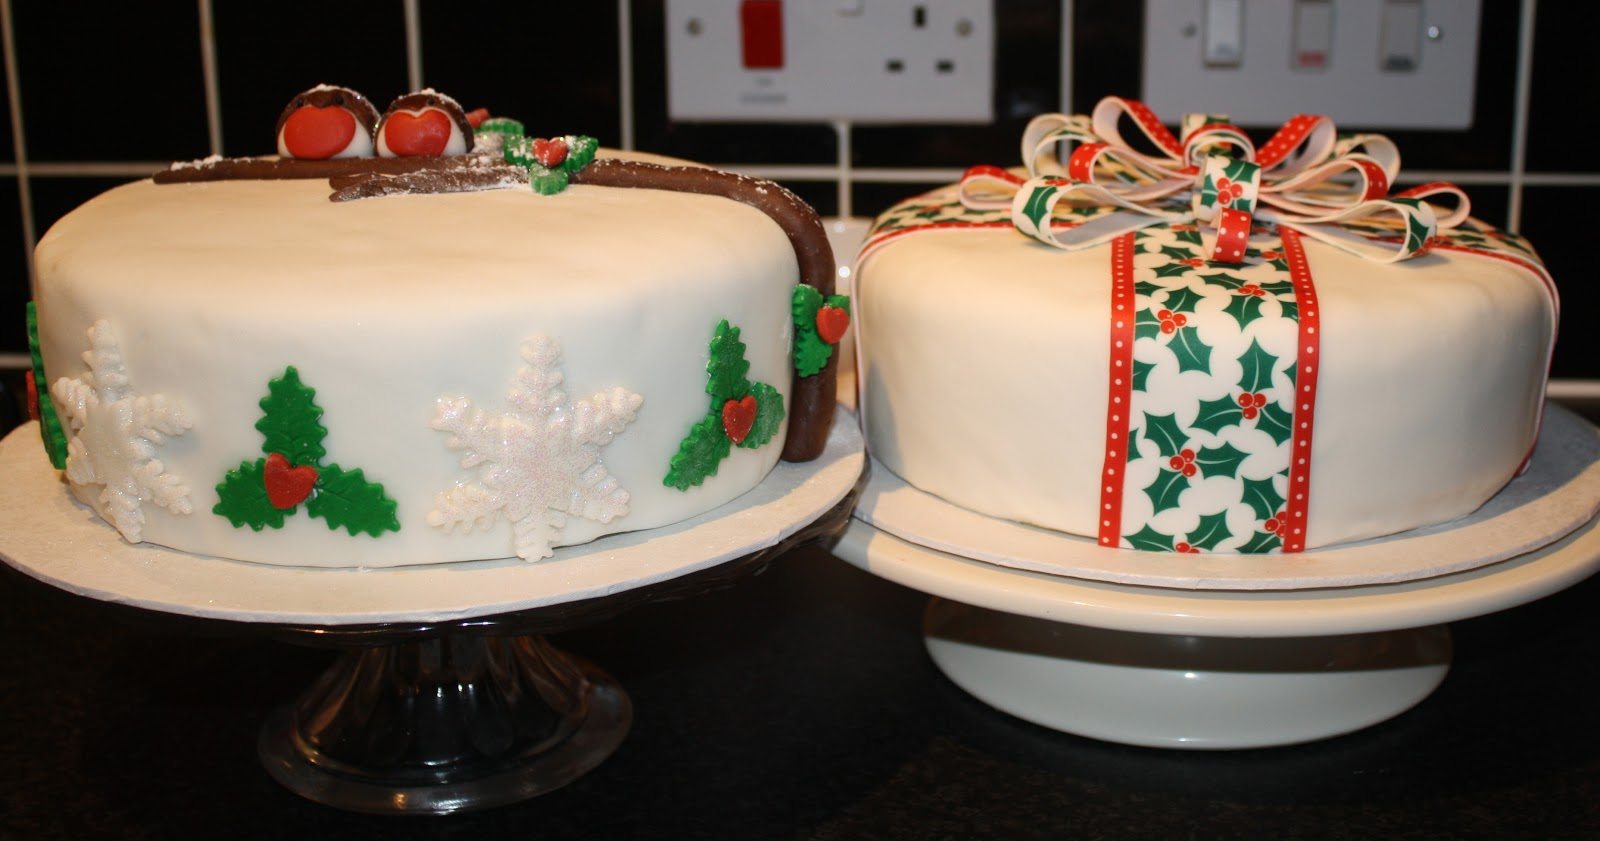 Easy Christmas Cake Decorating Ideas For Beginners.Easy Christmas Cake Decorating Ideas An Easy Cutout